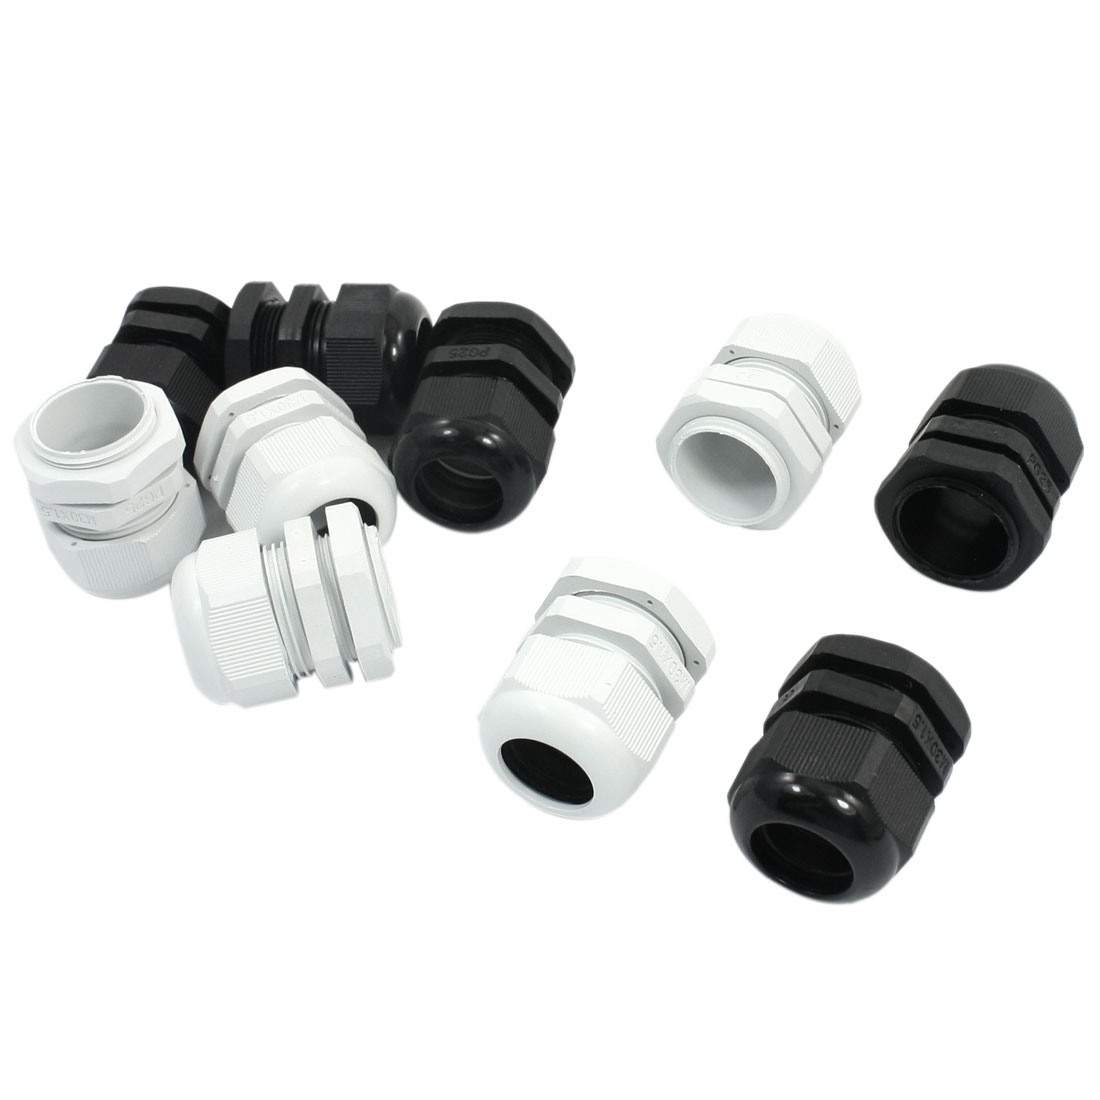 10 PCS PG25 16-21mm Dia Wire Black White Waterproof Connector Fastener Locknut Stuffing Cable Gland